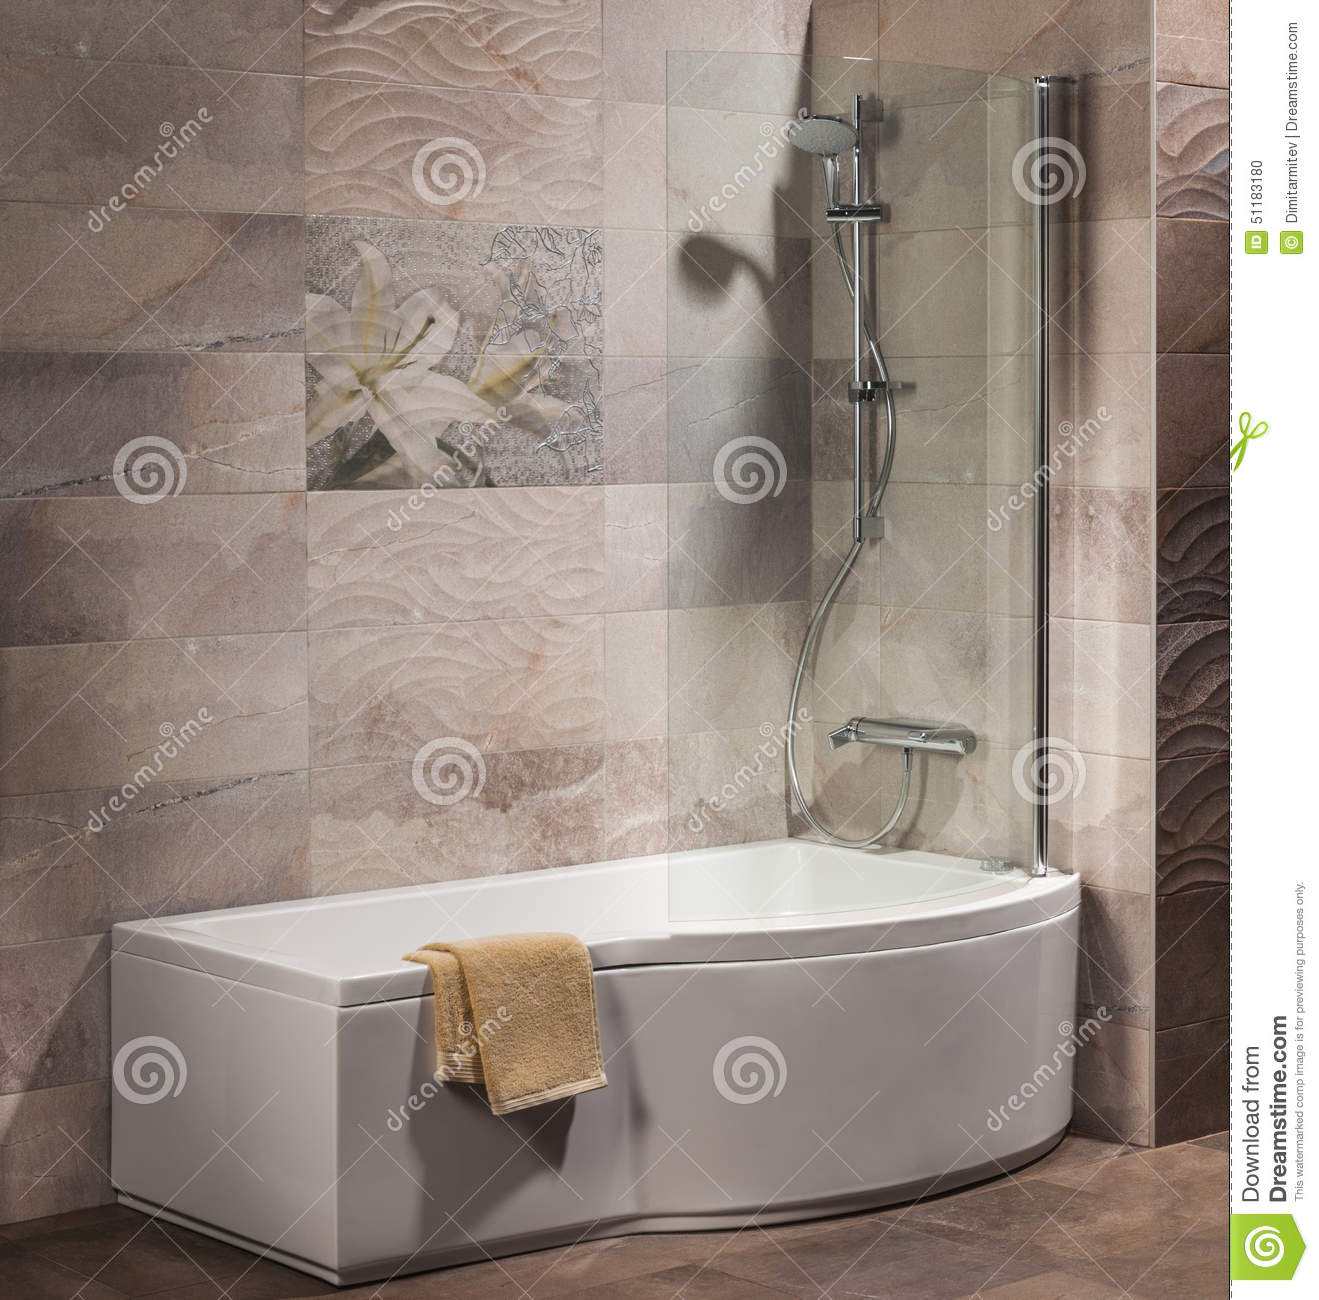 Detail of a modern bathroom stock photo image 51183180 for Detail in contemporary bathroom design